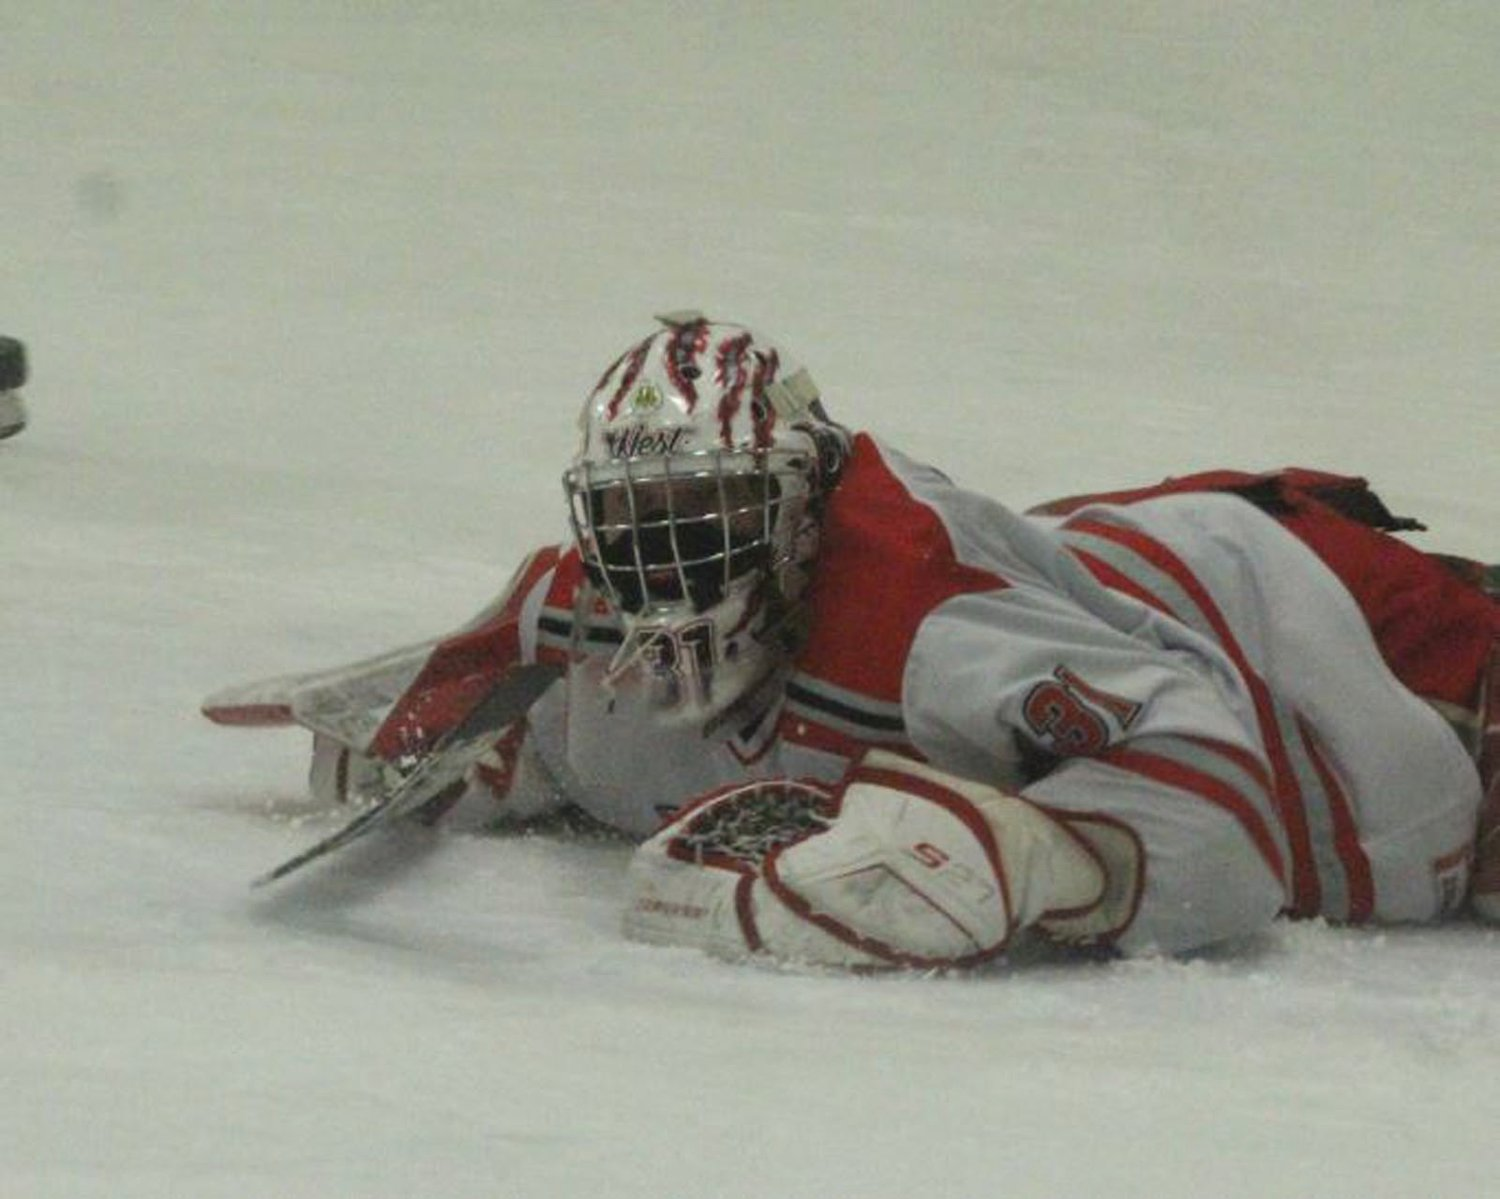 PLAYOFF MATT: Cranston goalie Matt Corrente sprawls out to make a save.